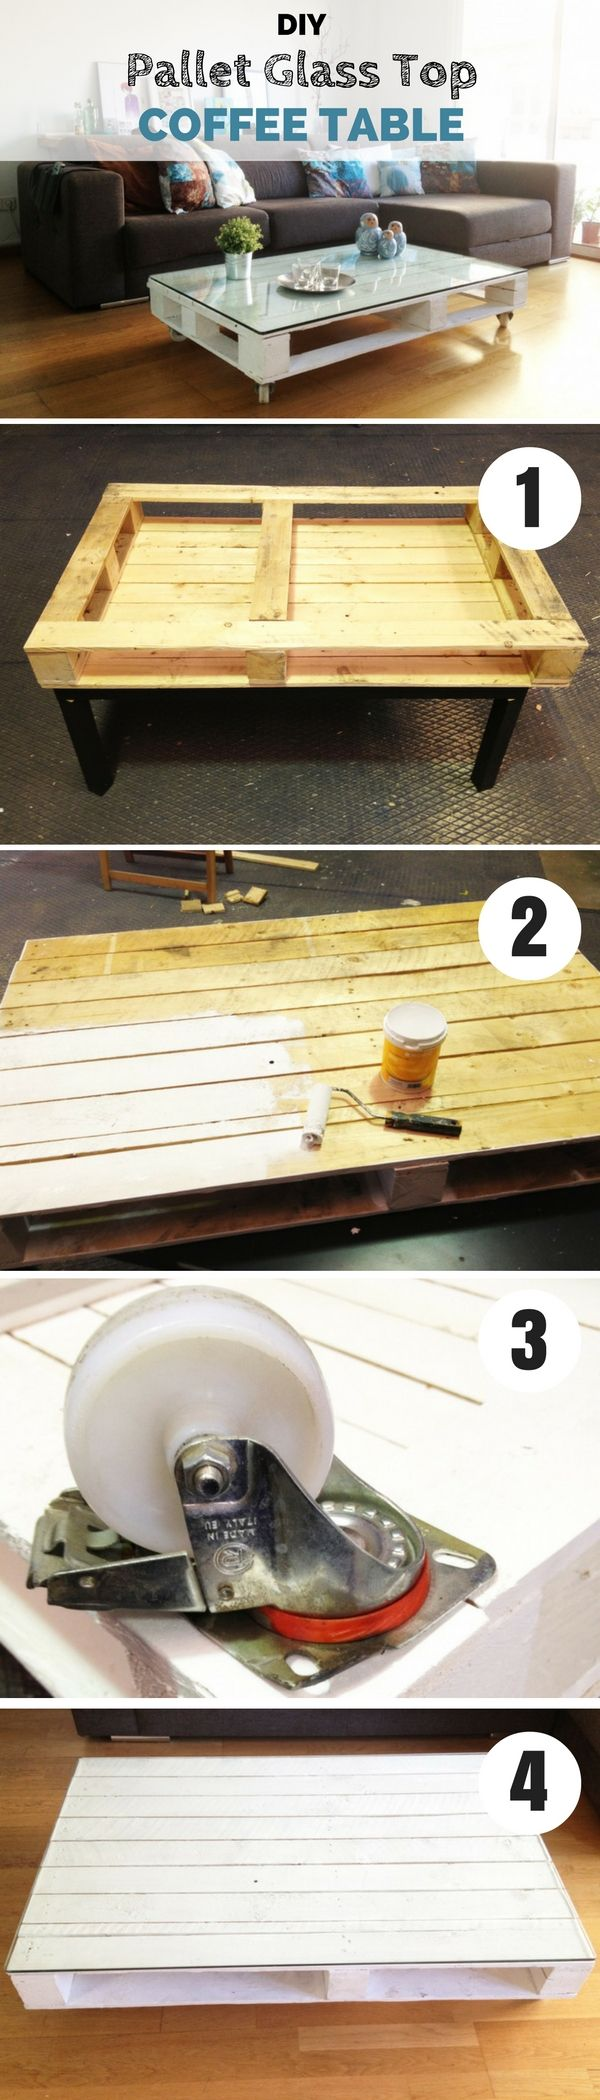 5 Easy DIY Coffee Table Projects - Casuable